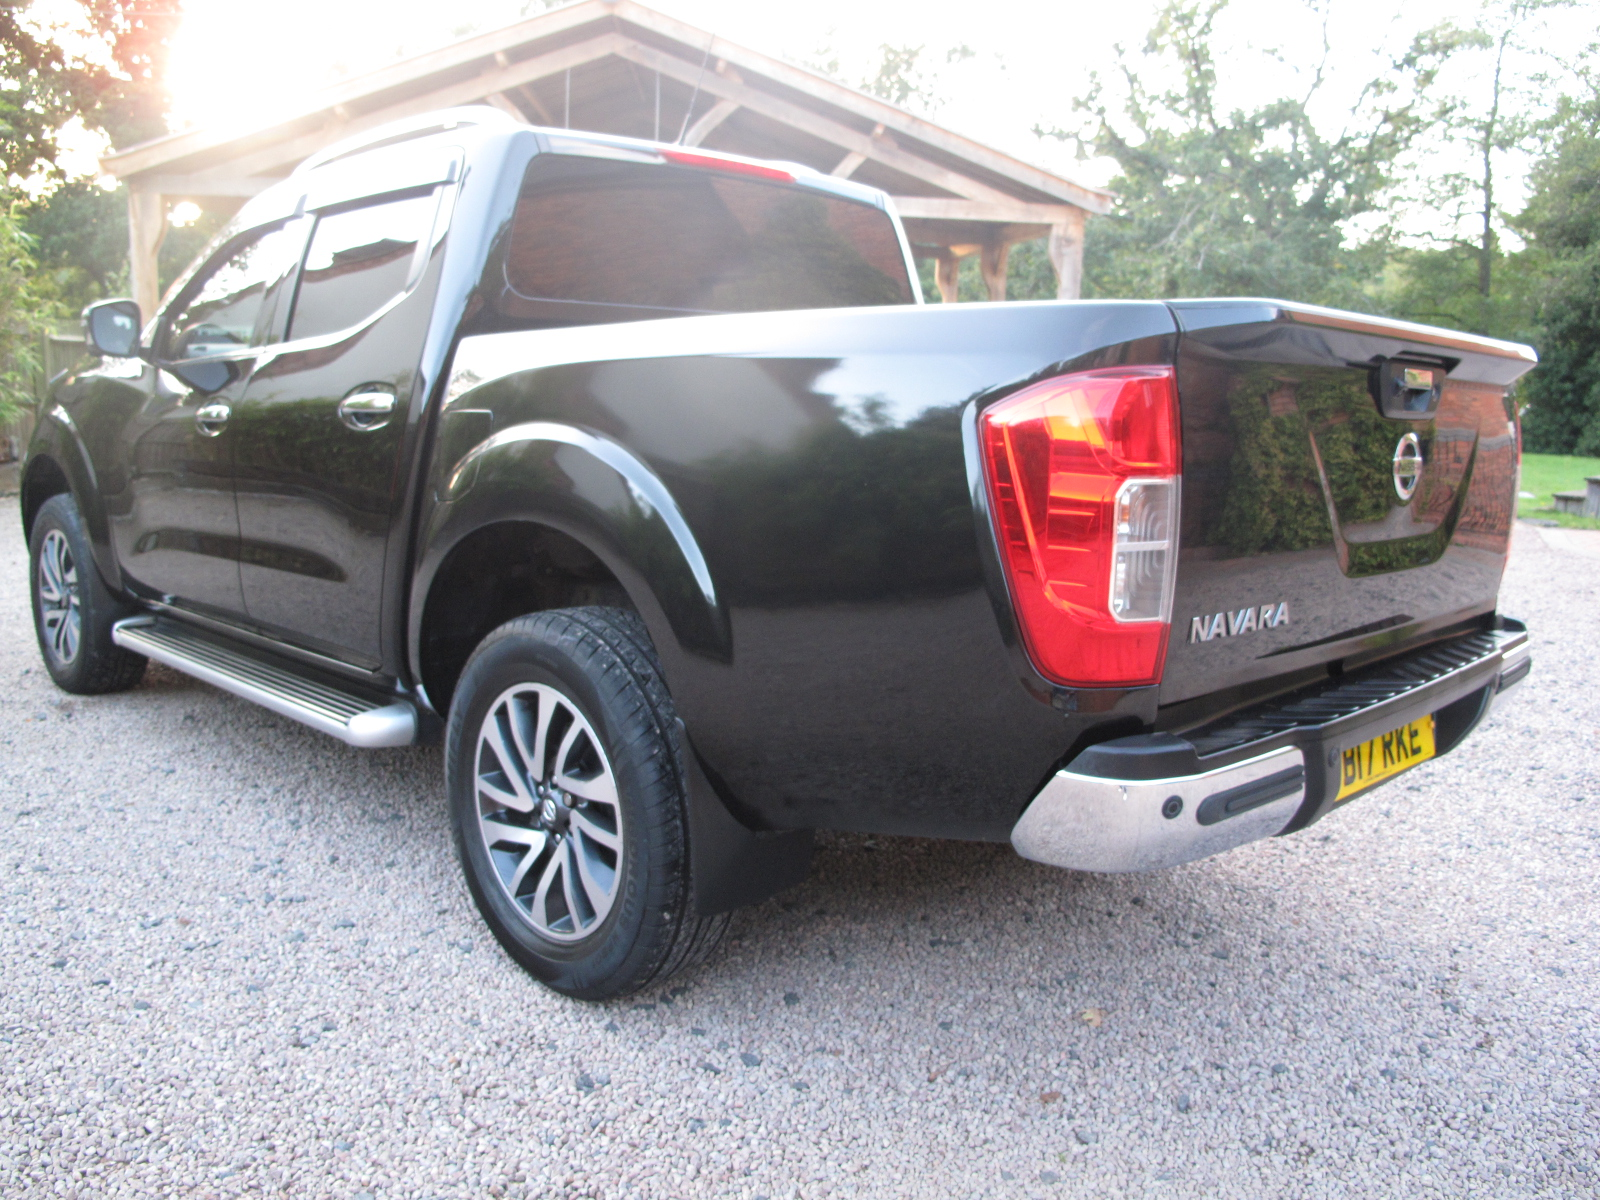 2017 17 Nissan Navara 2.3 dCi Tekna Double Cab Pickup 4WD (s/s) 4dr ABSOLUTELY STUNNING TRUCK! NO VAT! SOLD! full